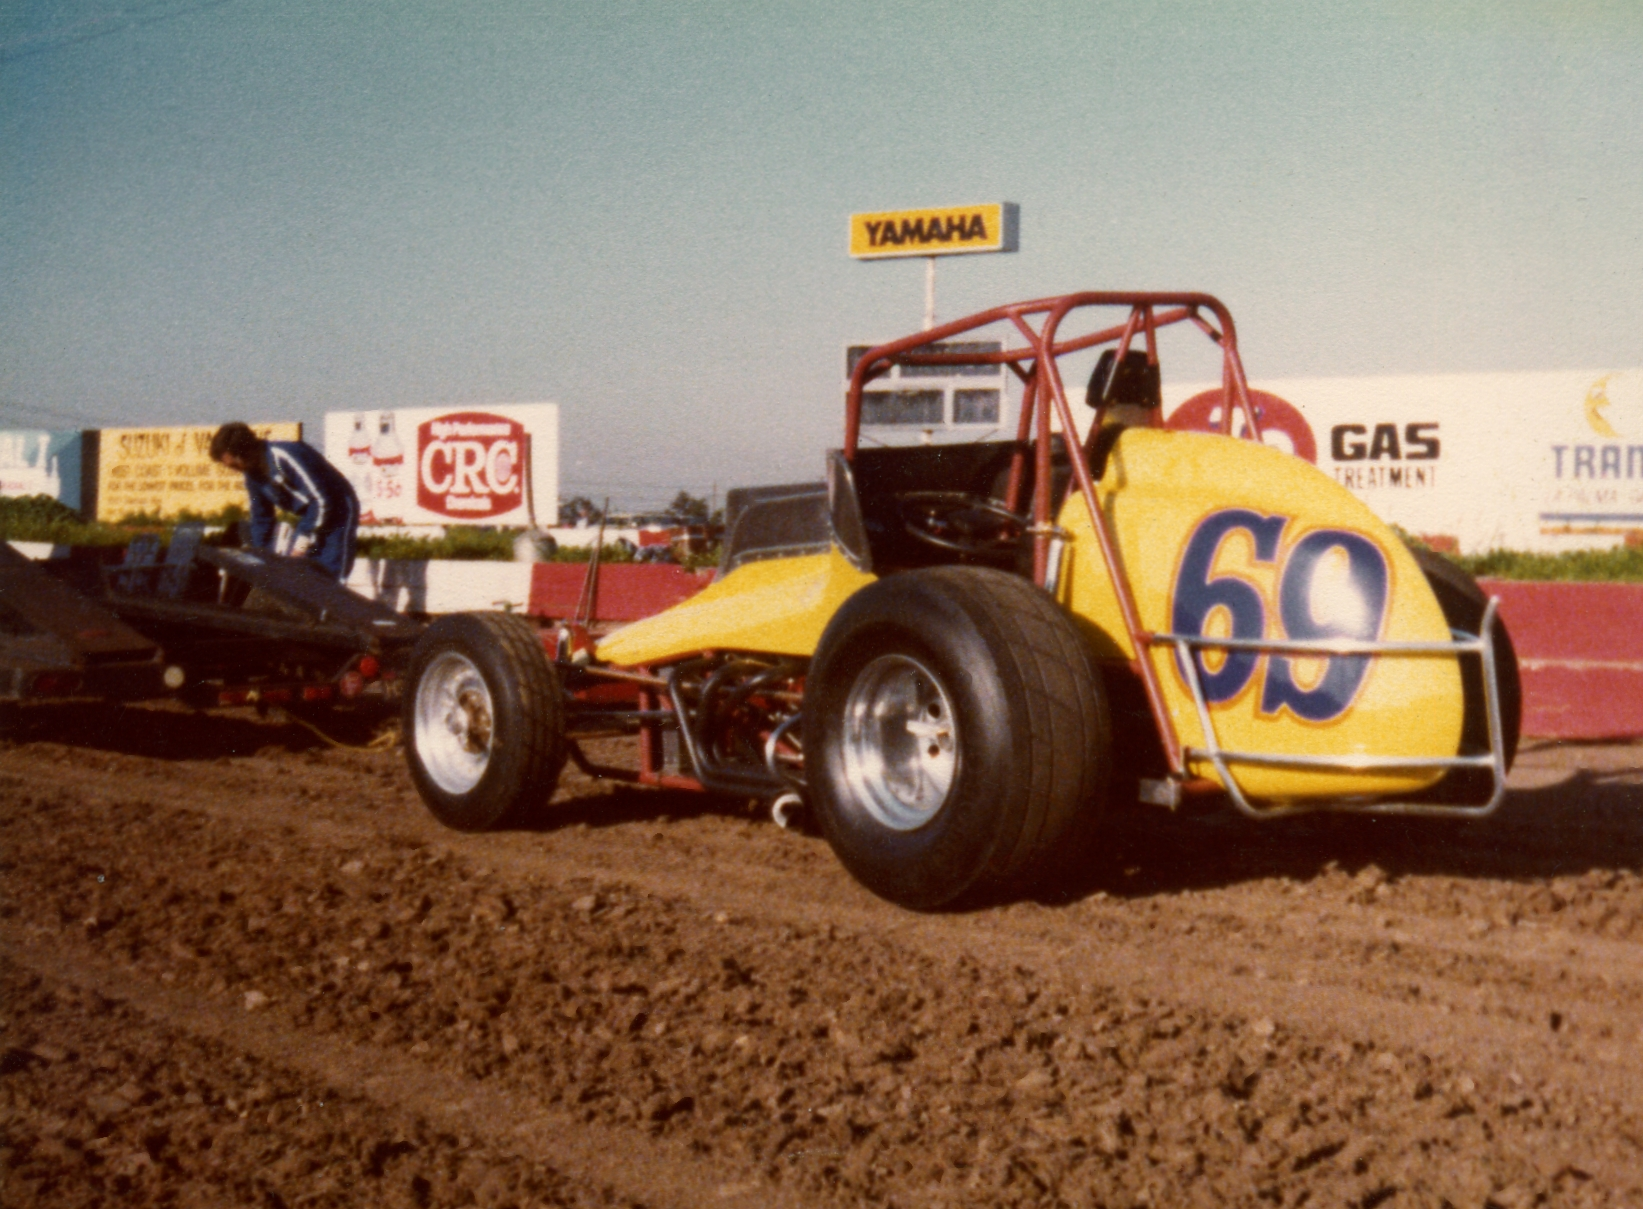 Jim Watson Sprint Car being taken off trailer. circa 1980/90's